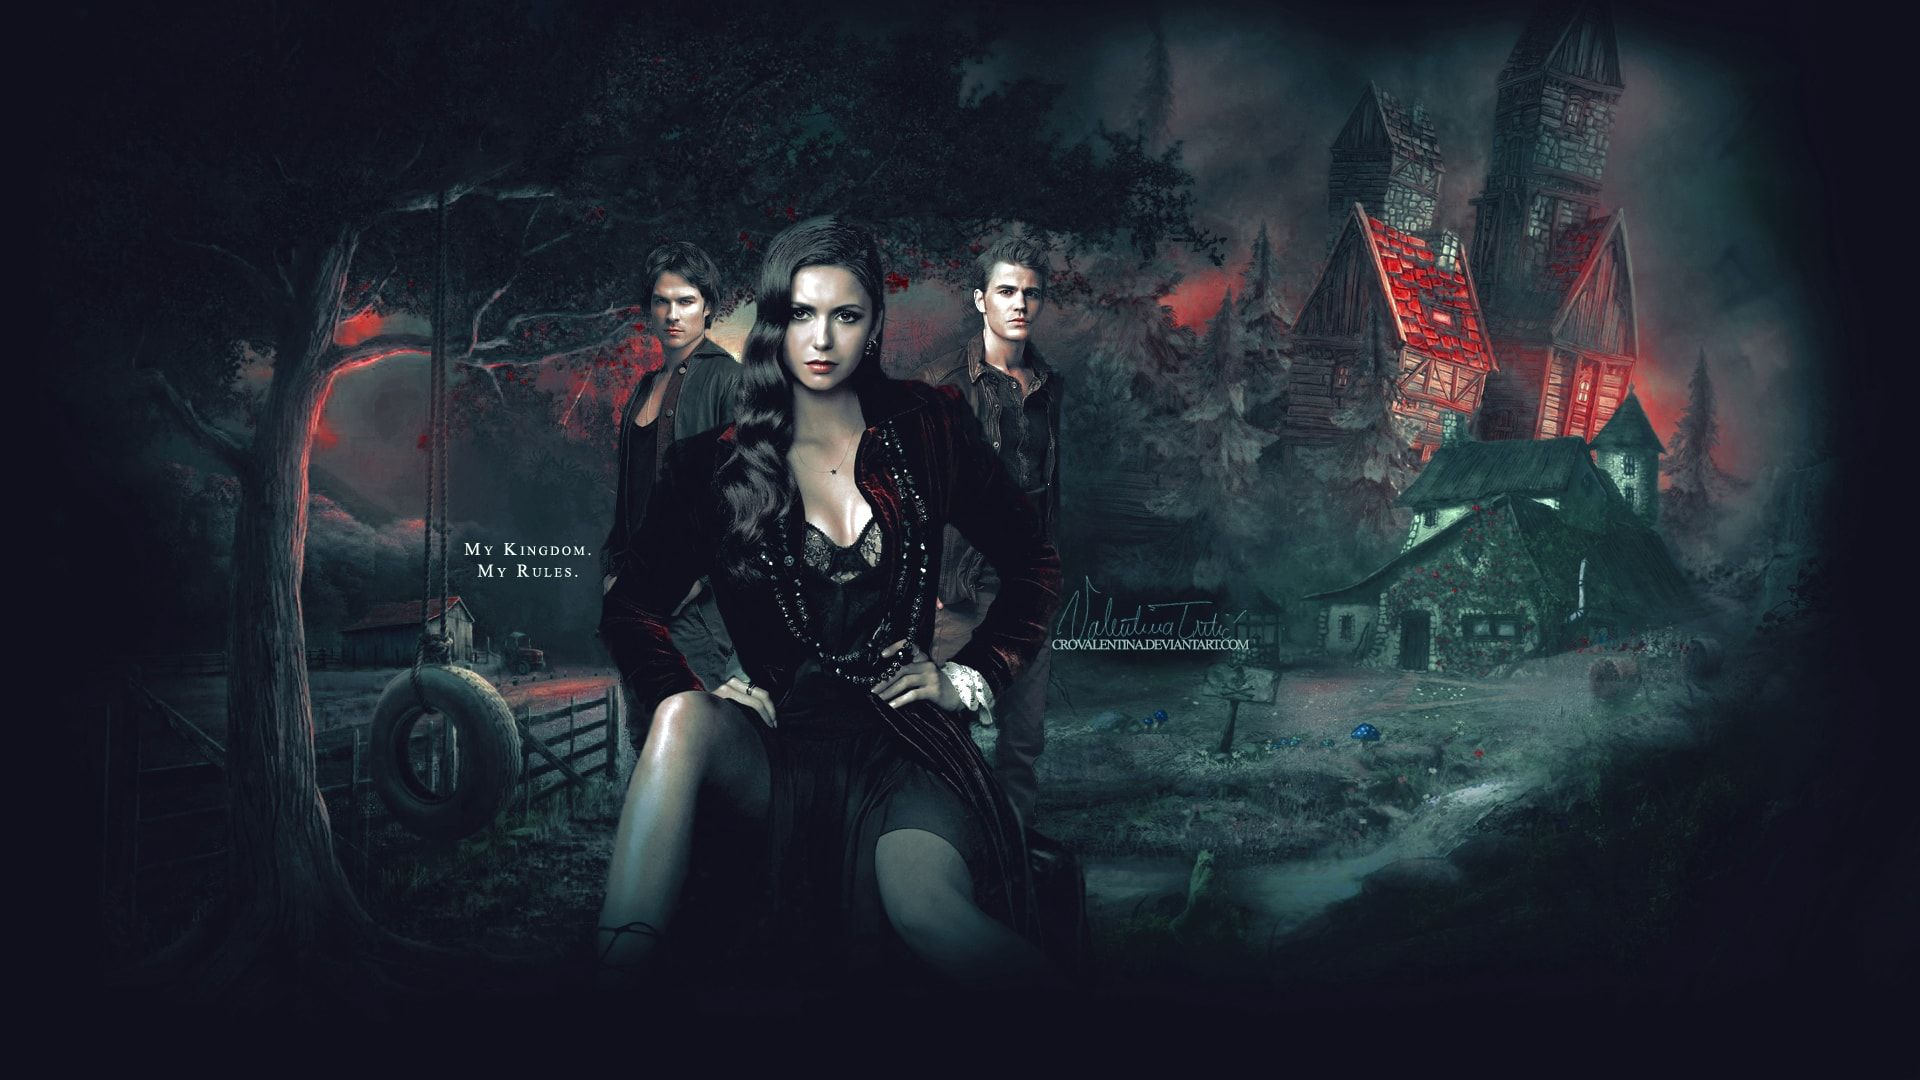 The Vampire Diaries Wallpaper Collection 2560×1440 The